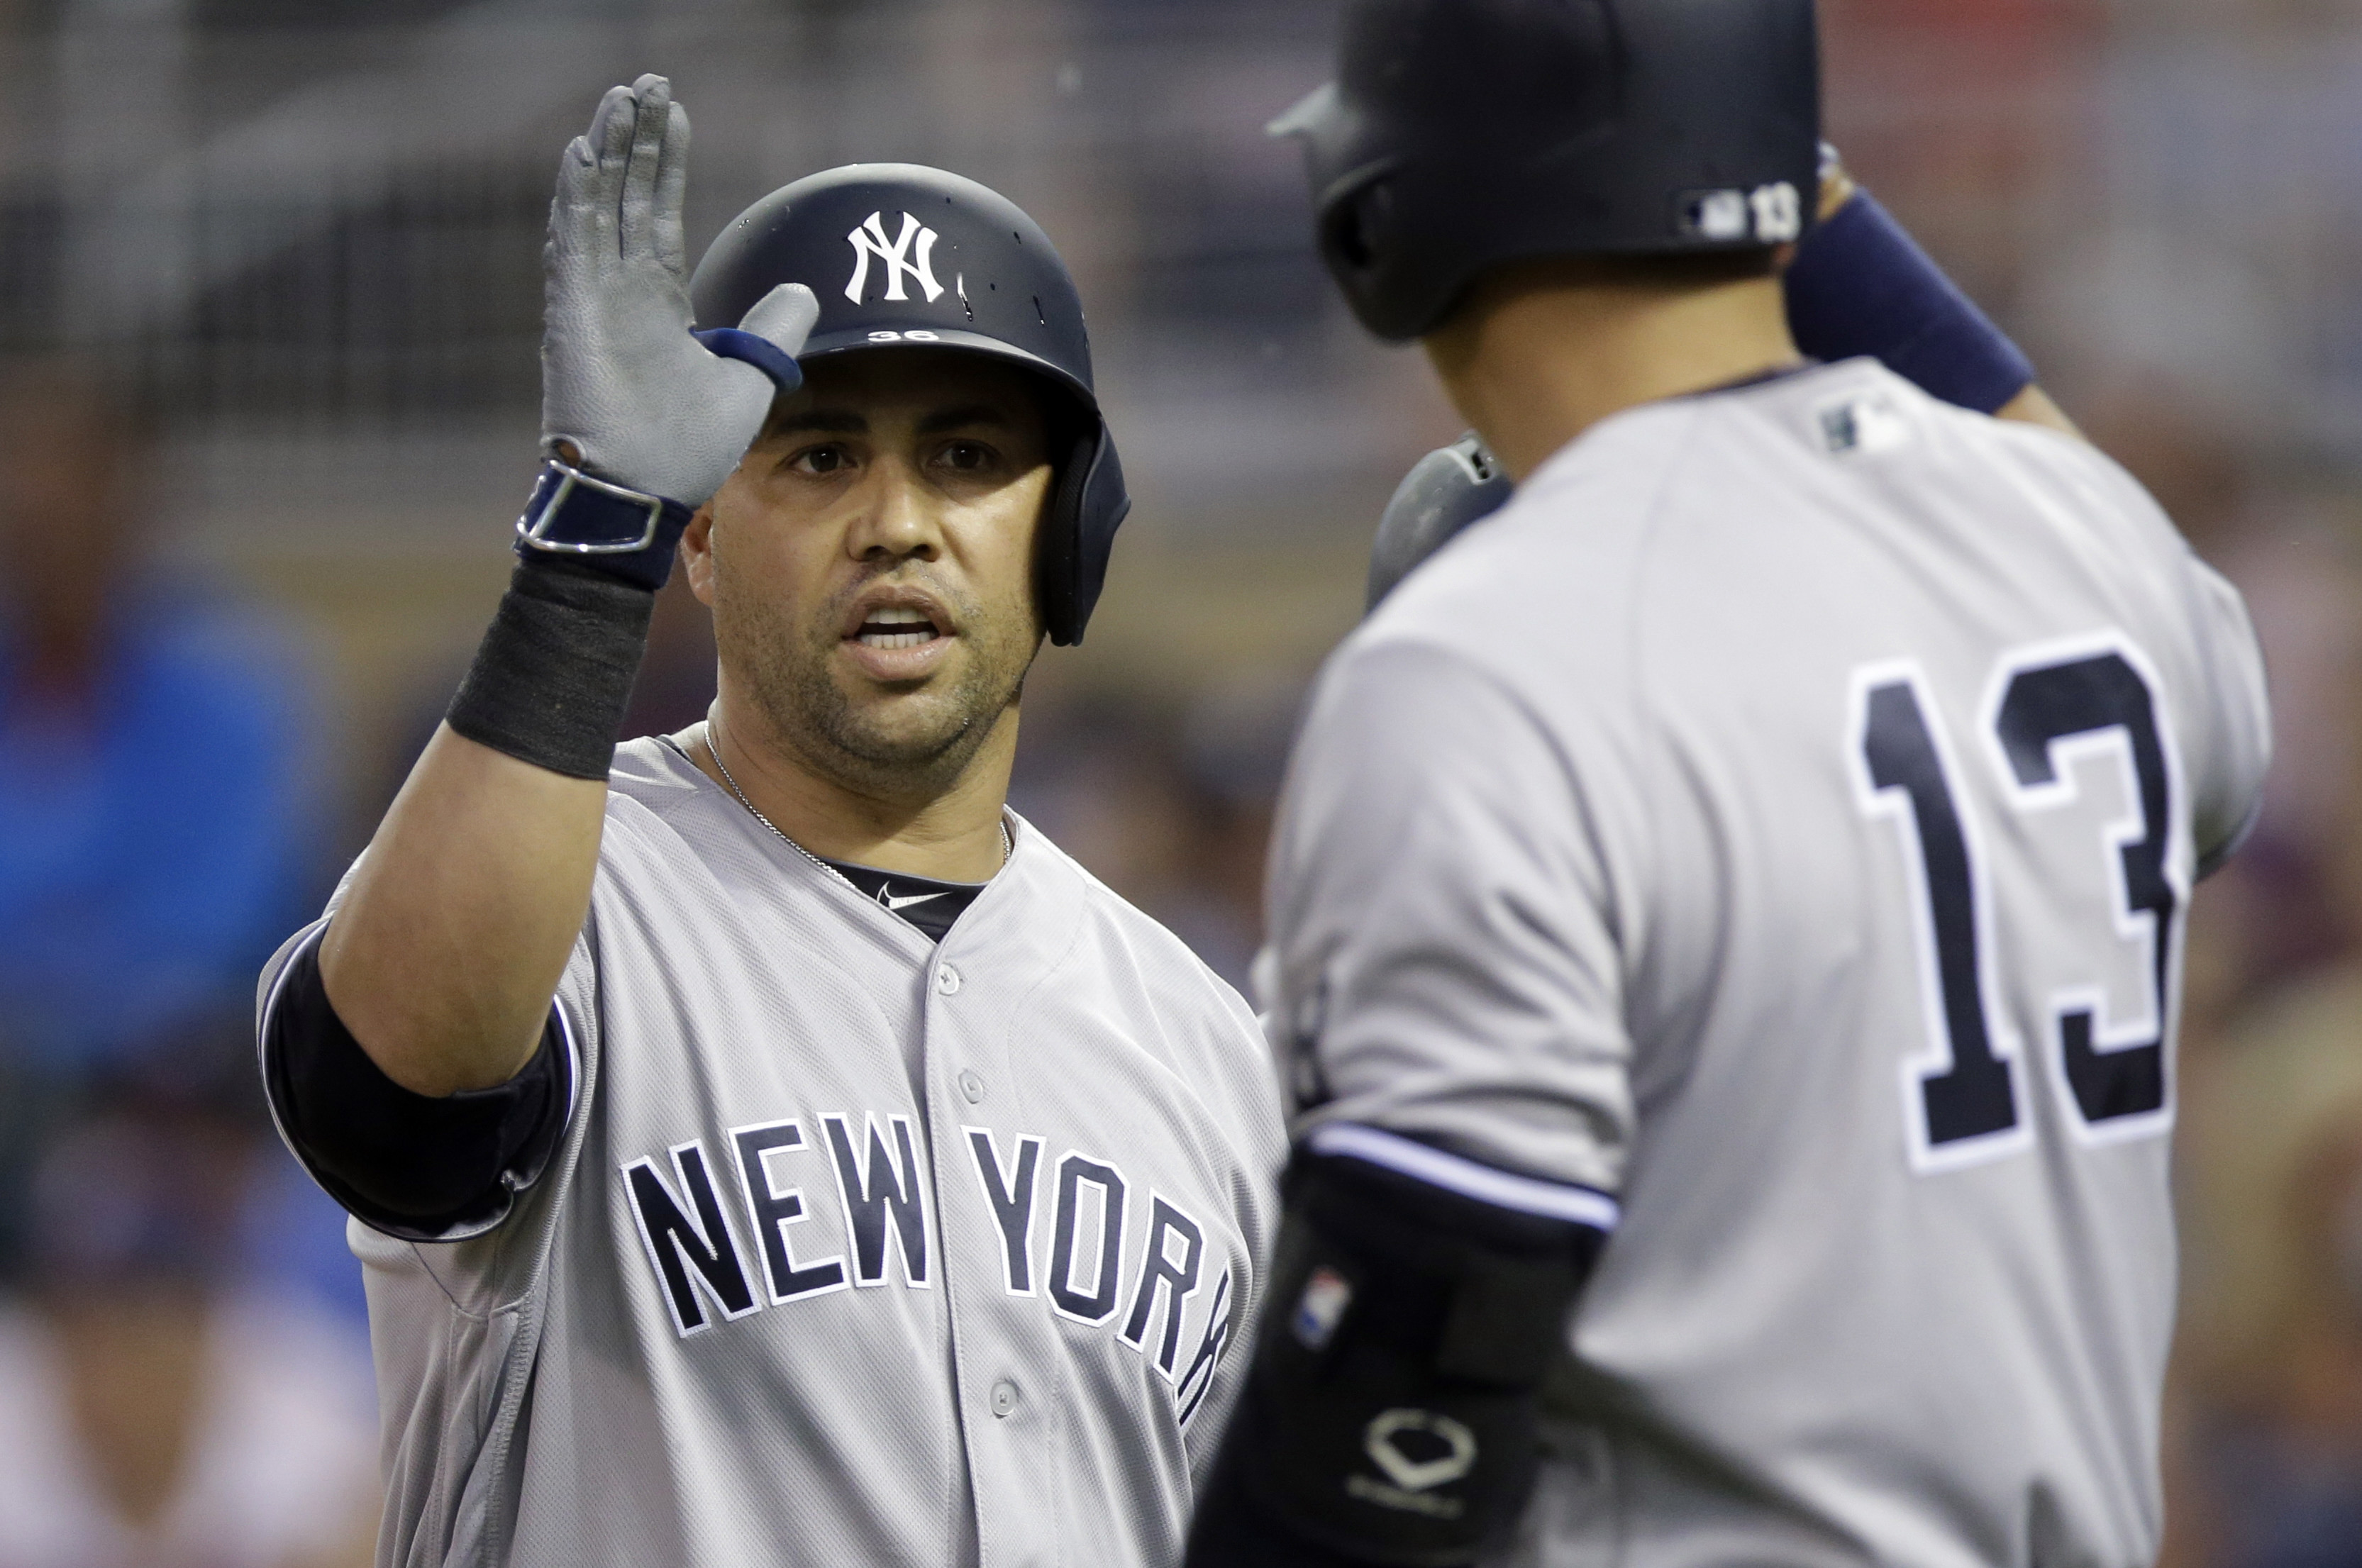 New York Yankees' Carlos Beltran, left, gets a high five from Alex Rodriguez following his two-run home run off Minnesota Twins pitcher Pat Dean in the first inning of a baseball game Friday, June 17, 2016, in Minneapolis. (AP Photo/Jim Mone)